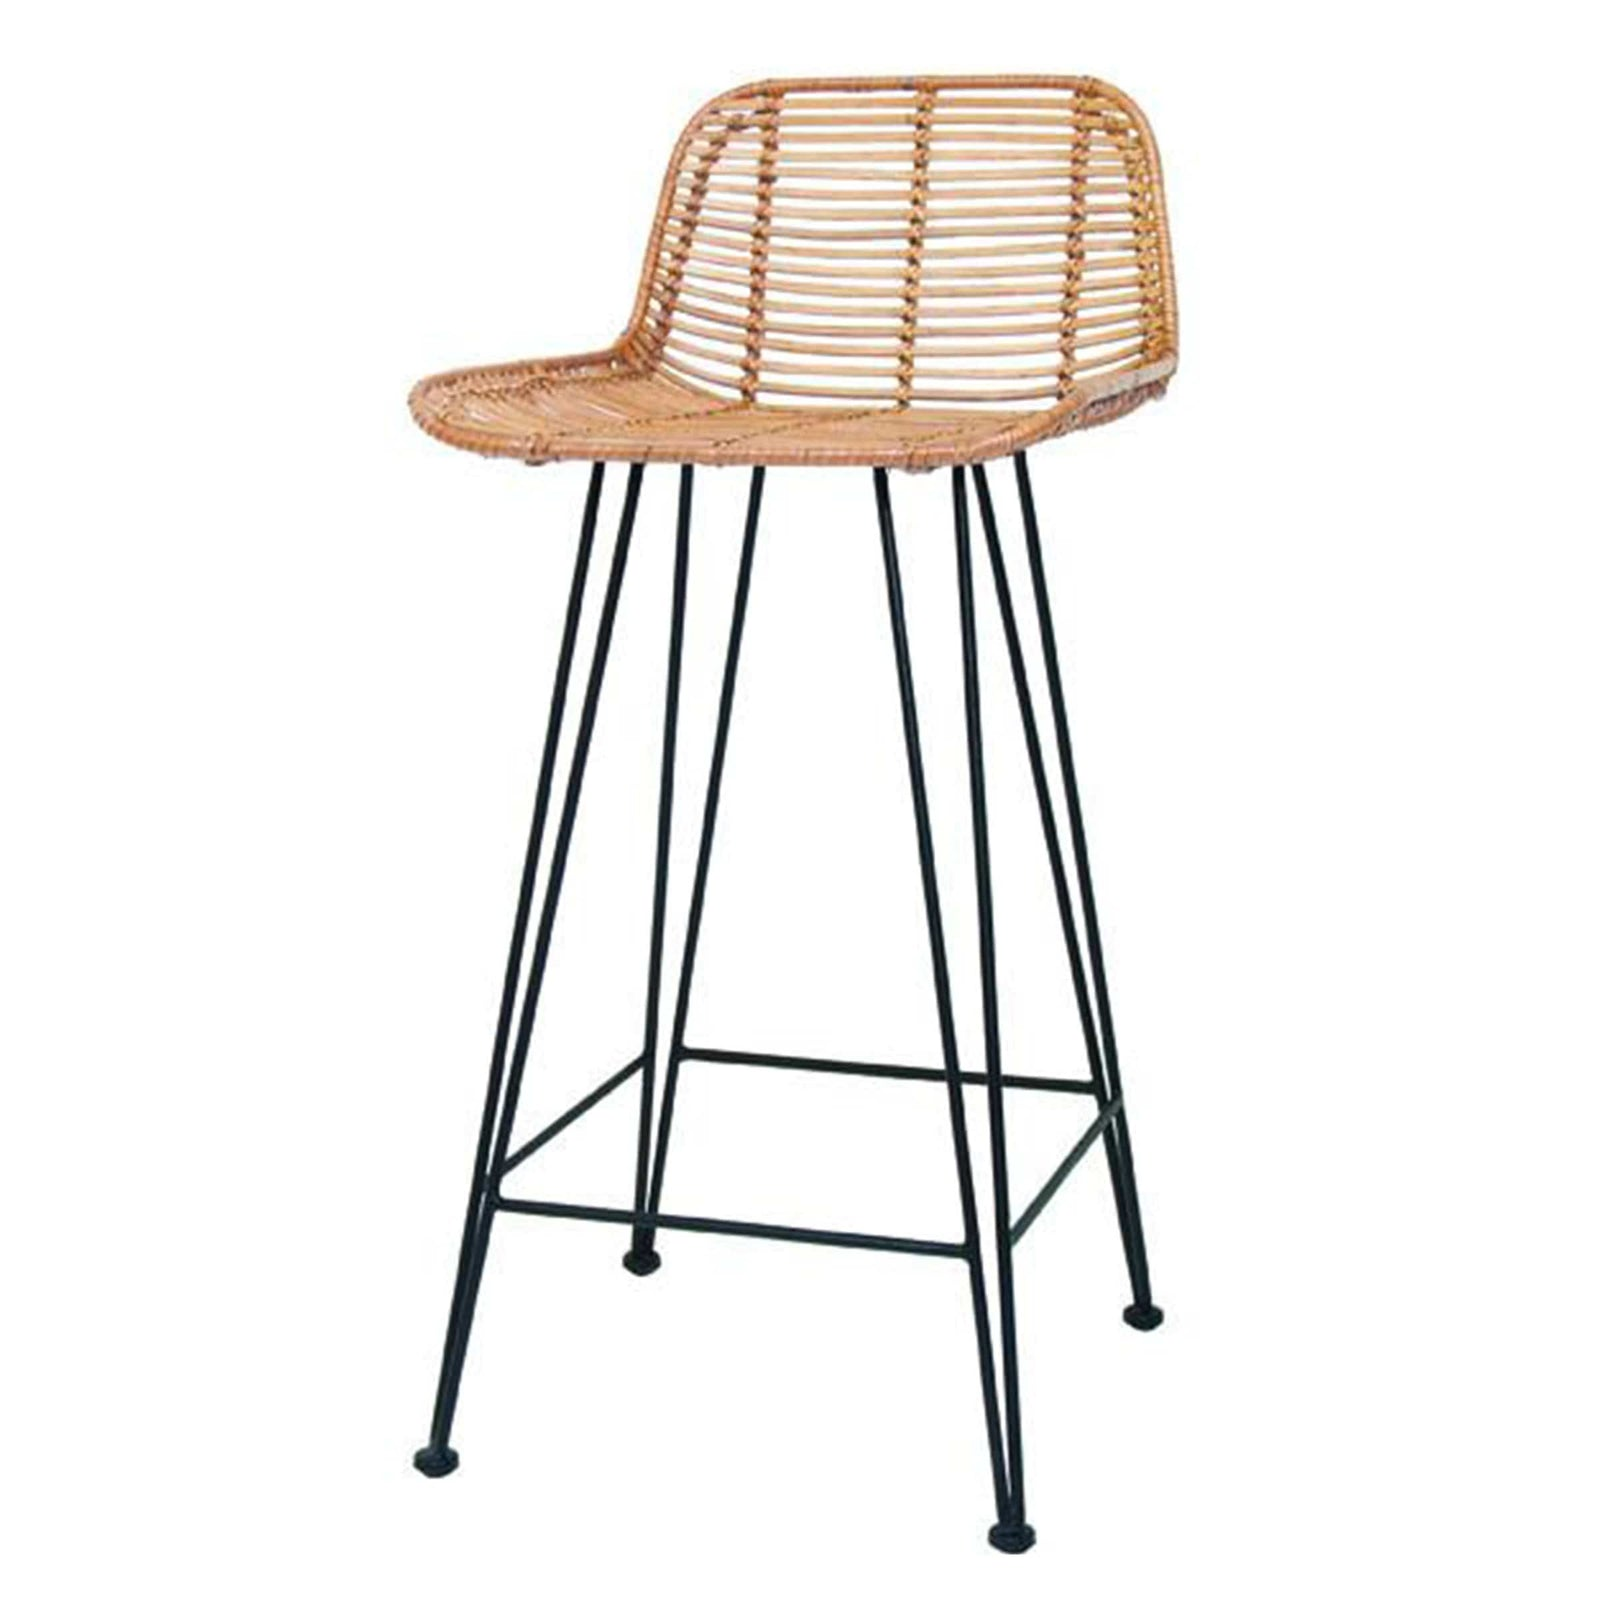 HK Living Furniture Rattan Counter Stool - Natural